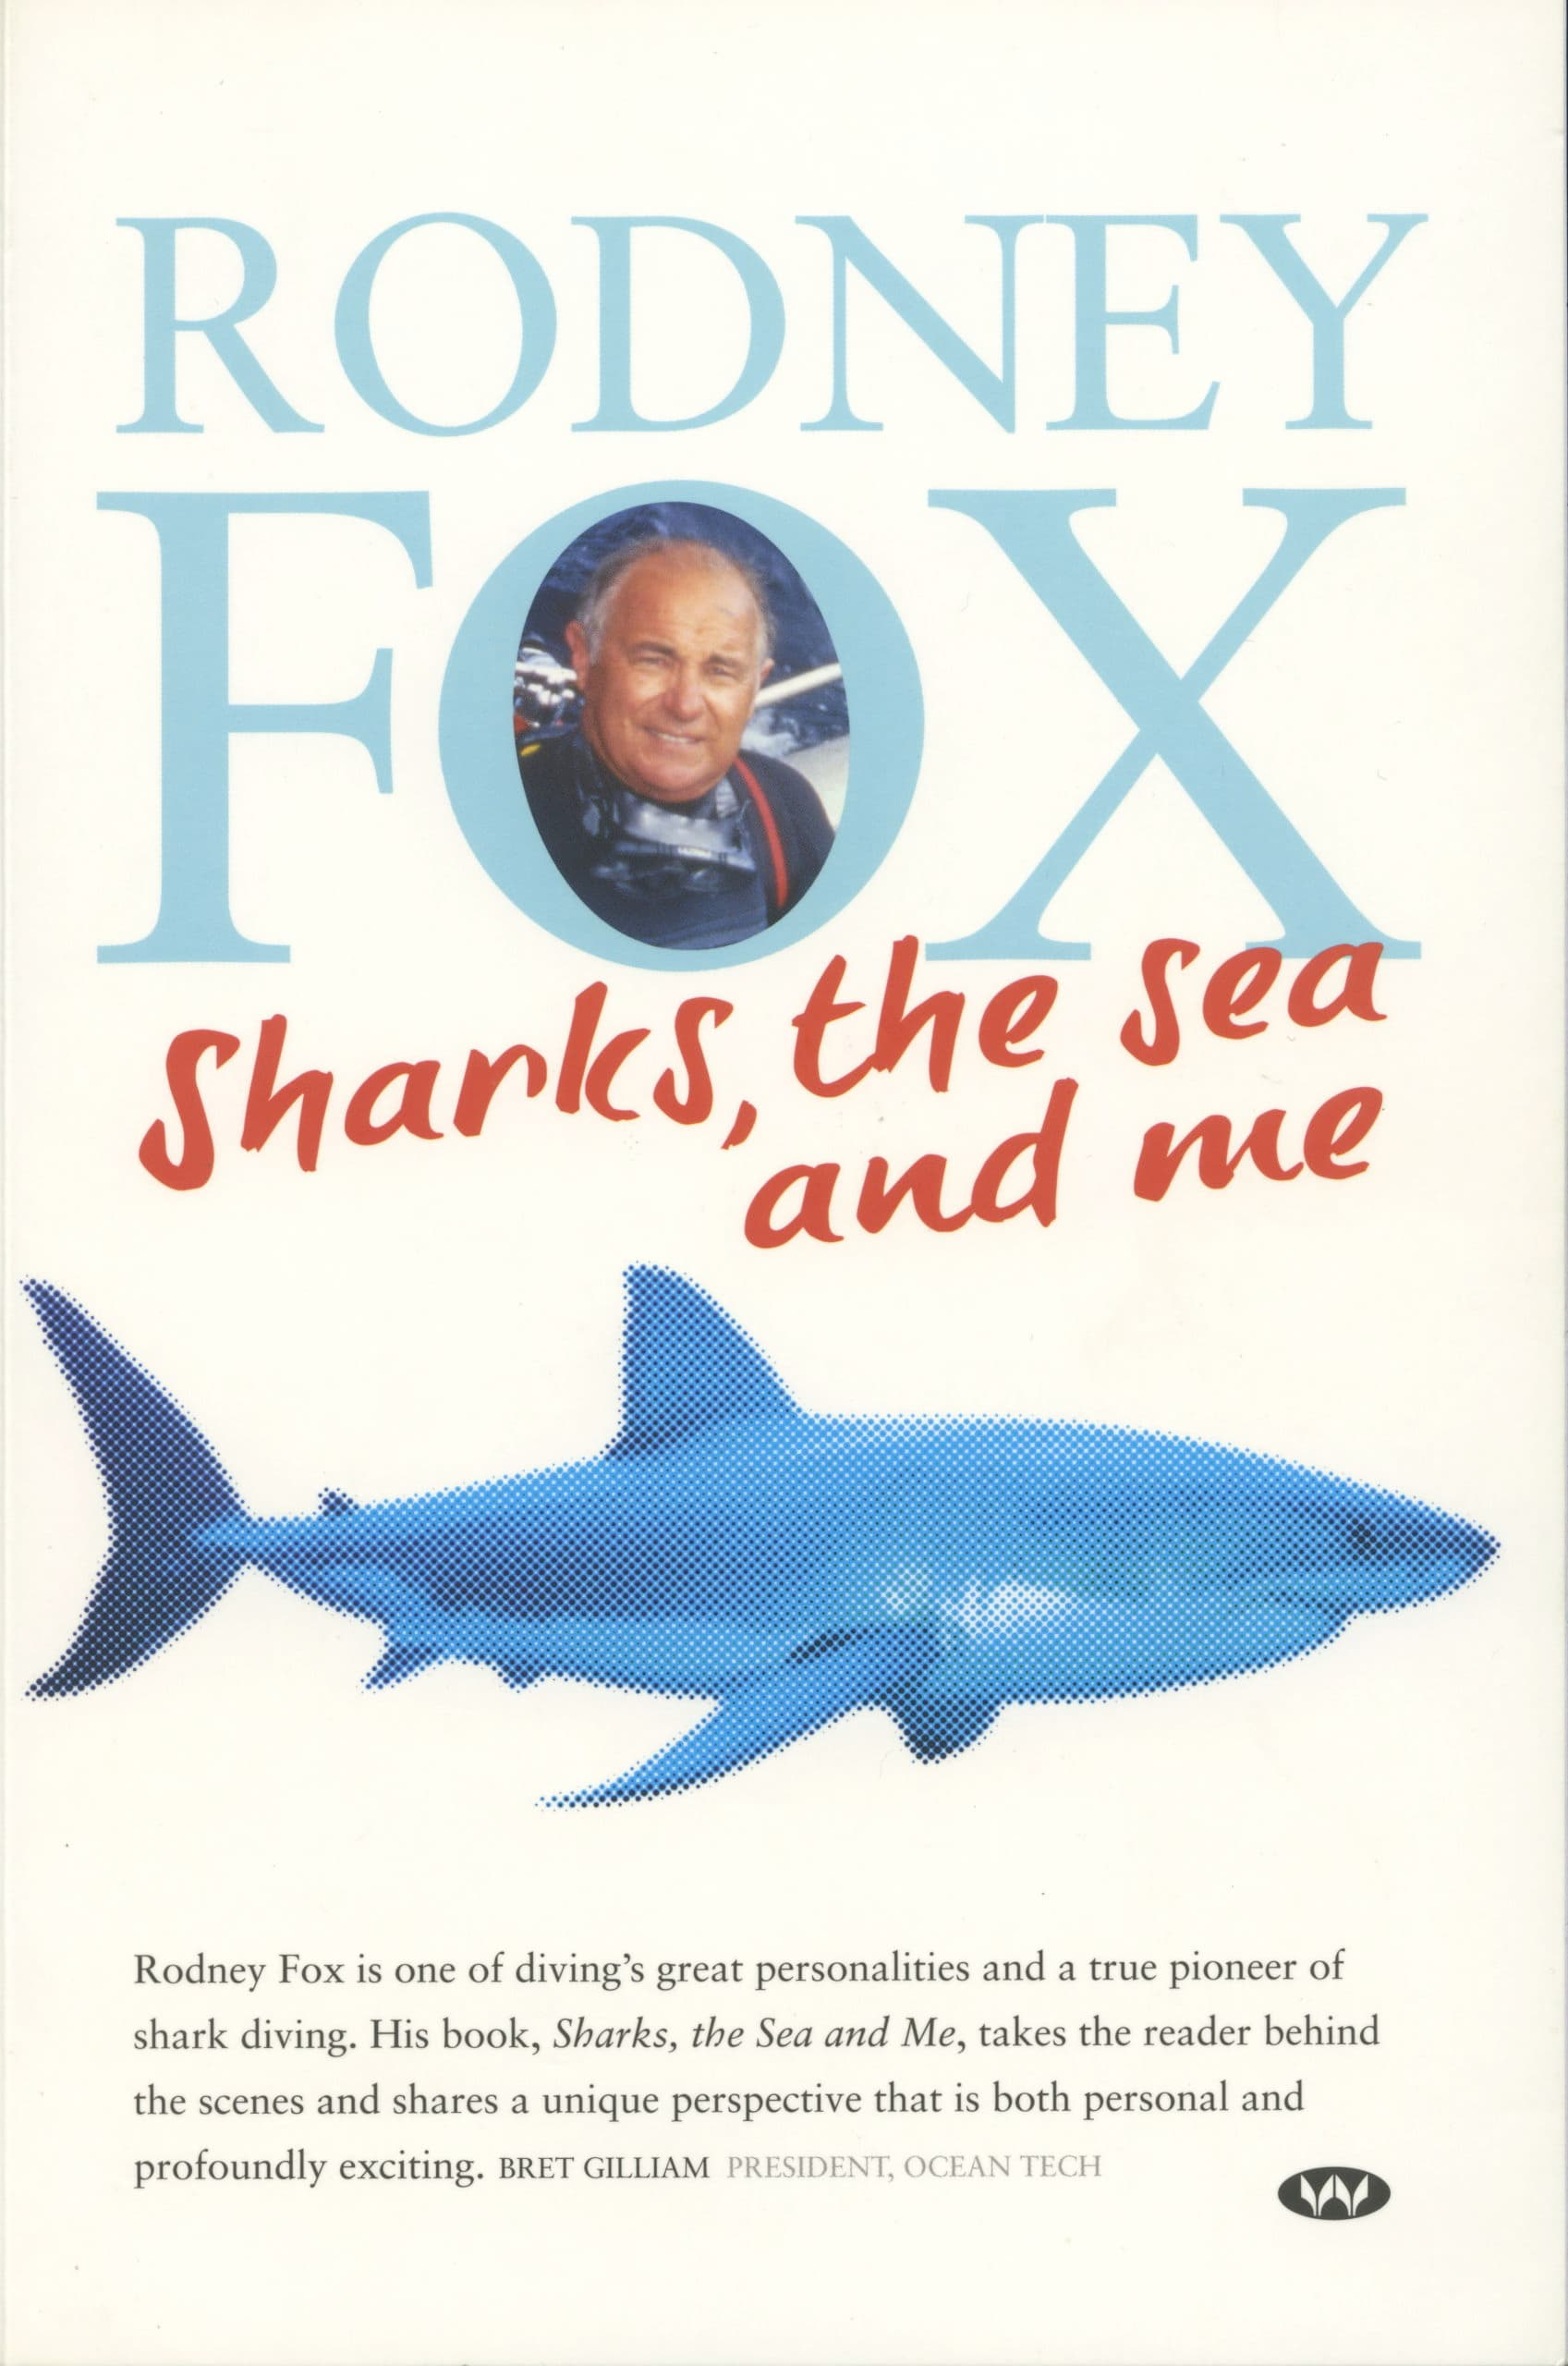 Rodney Fox Book - Sharks the sea and me